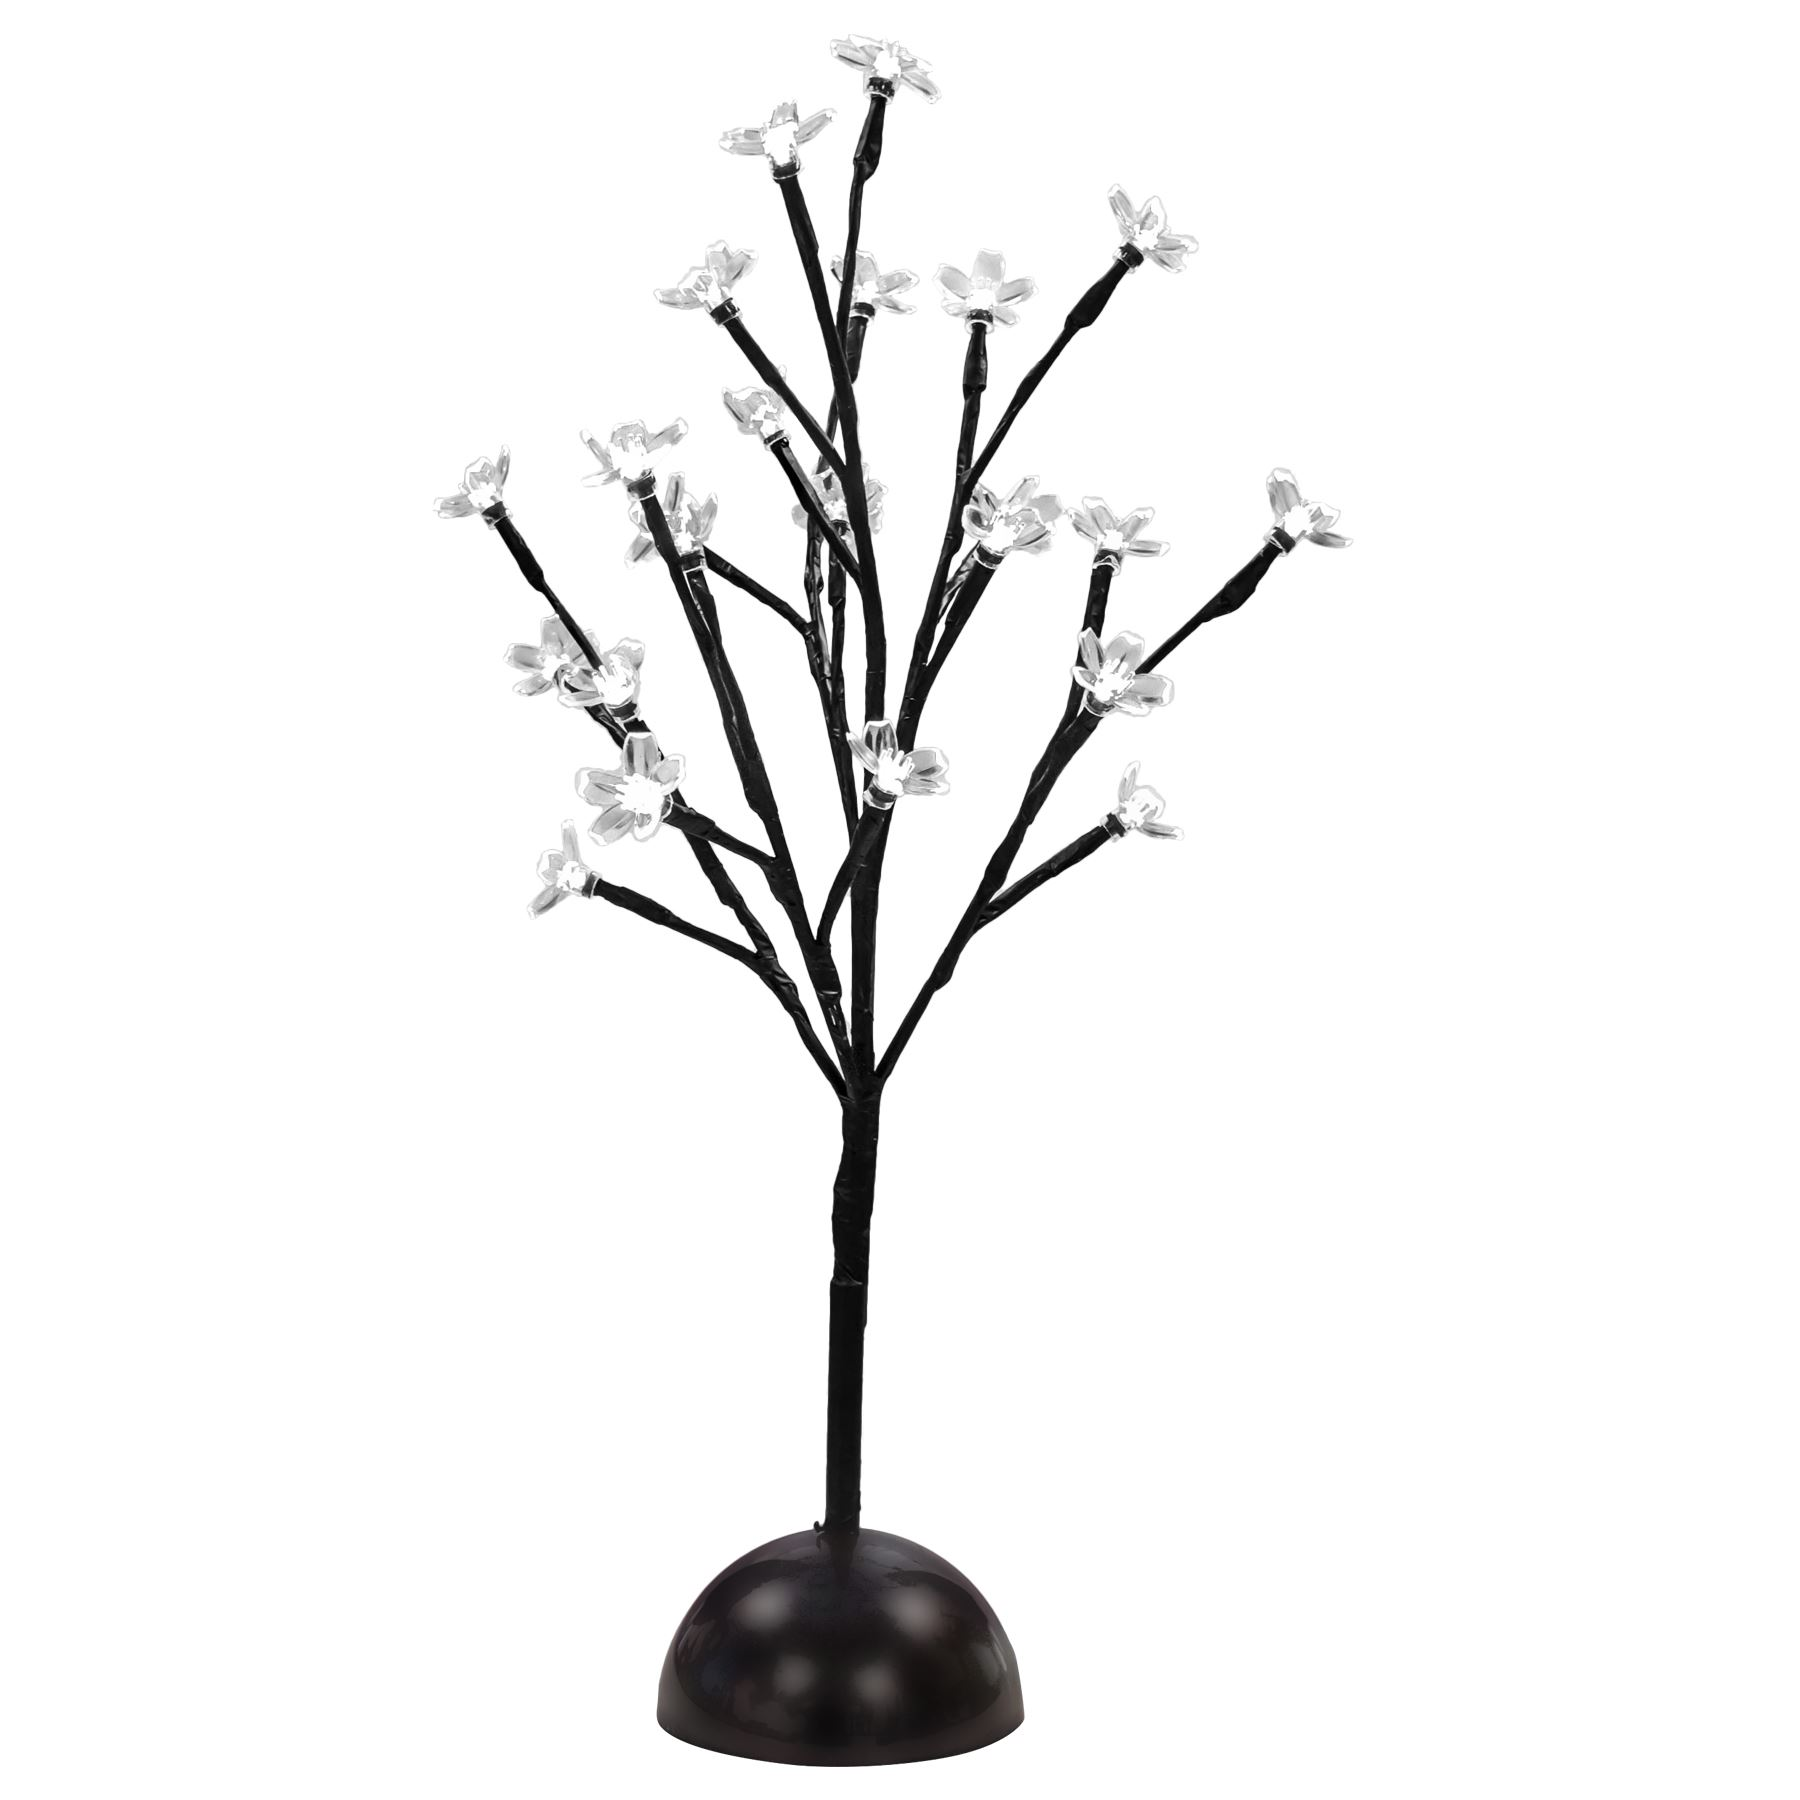 Led branch light blossom flower tree twig decorative battery powered led branch light blossom flower tree twig decorative aloadofball Gallery